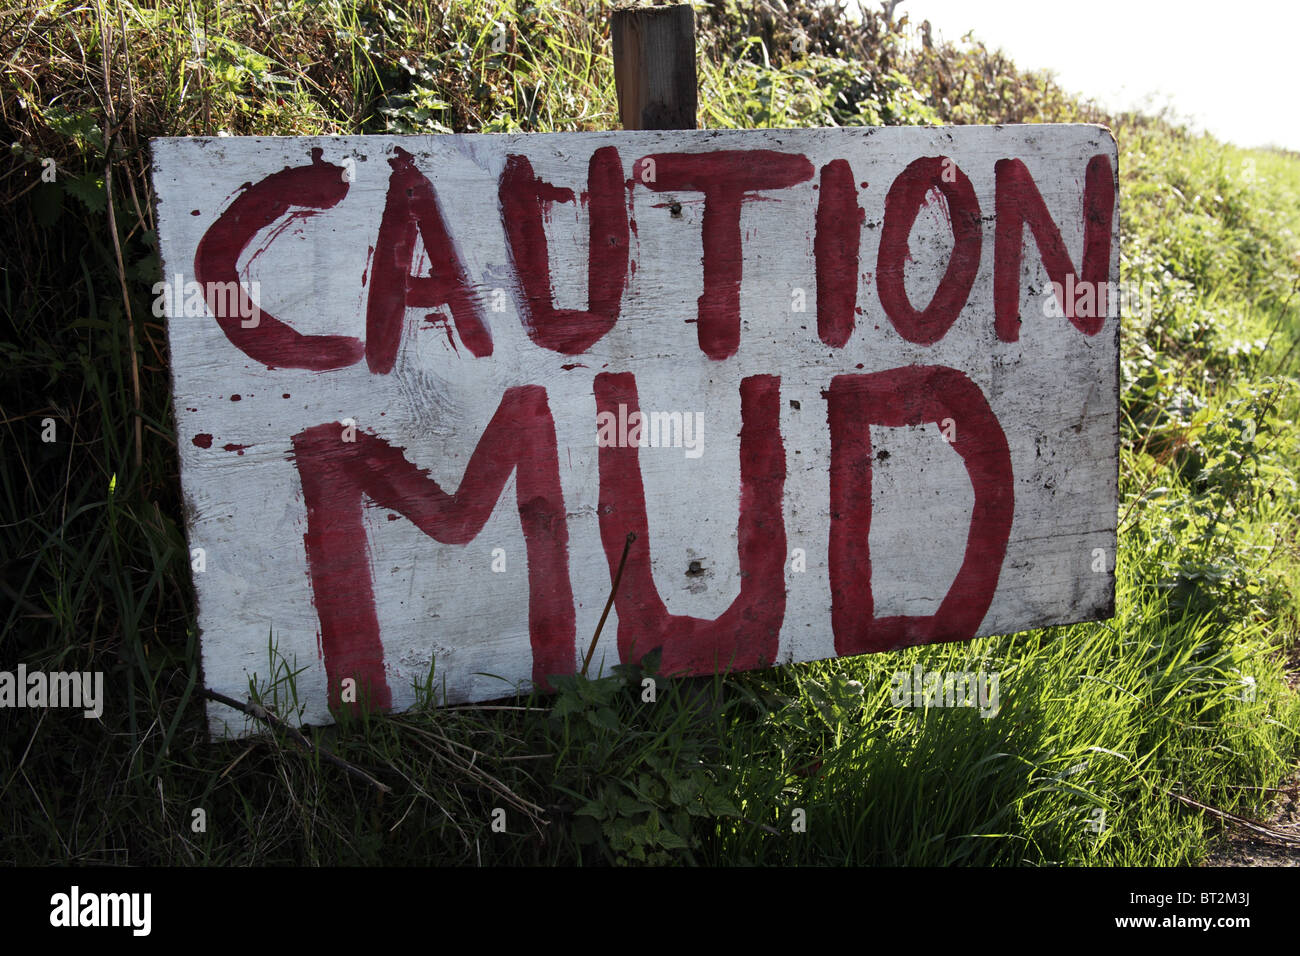 Caution Mud. Handwritten sign on country road - Stock Image